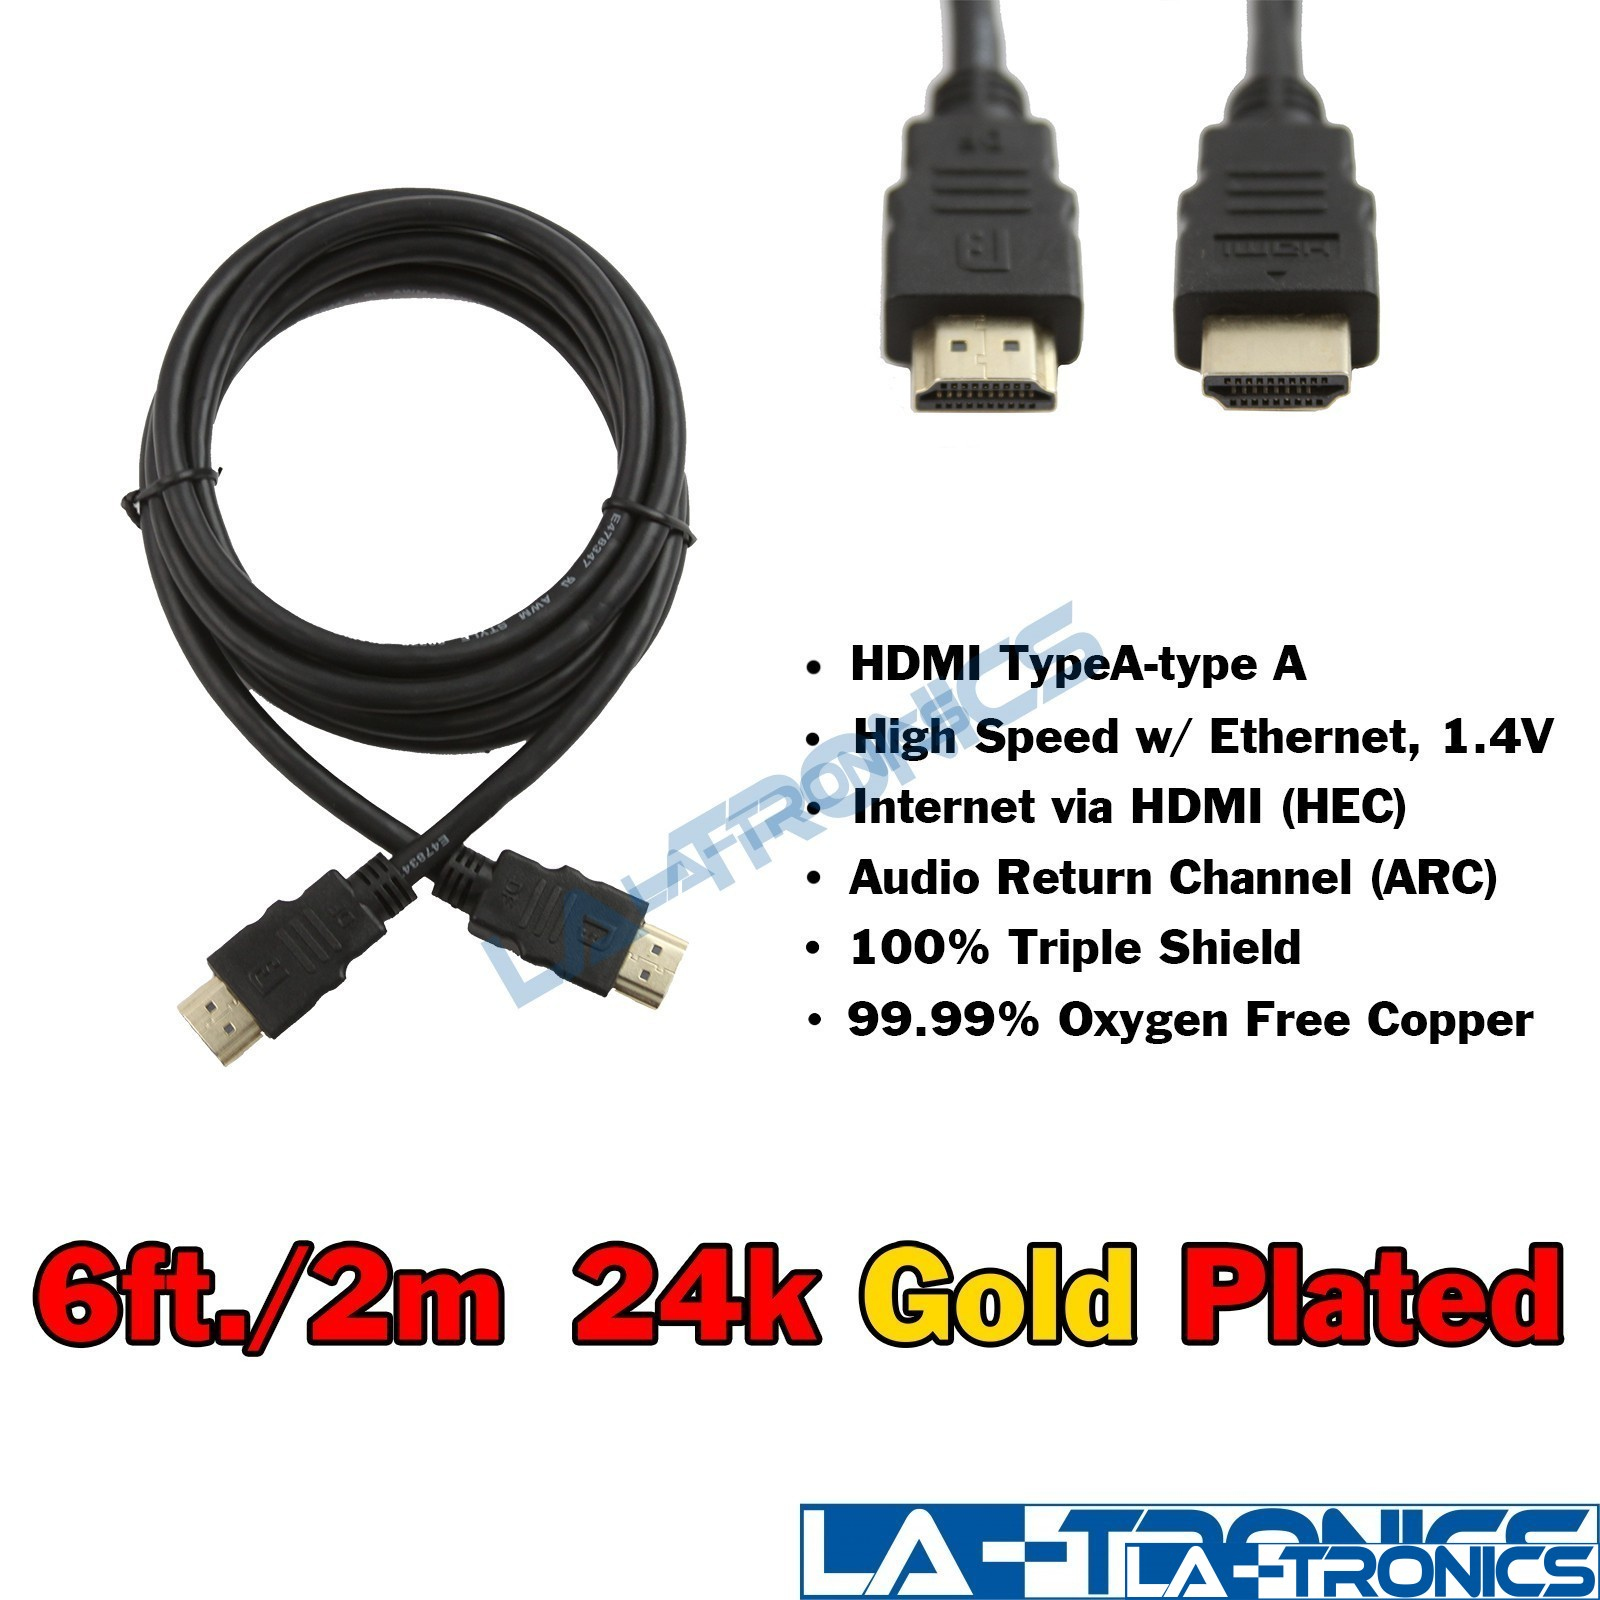 NEW Premium 6ft HDMI 24K Gold Plate 1.4V Cable male to male Full HD 1080p HDTV